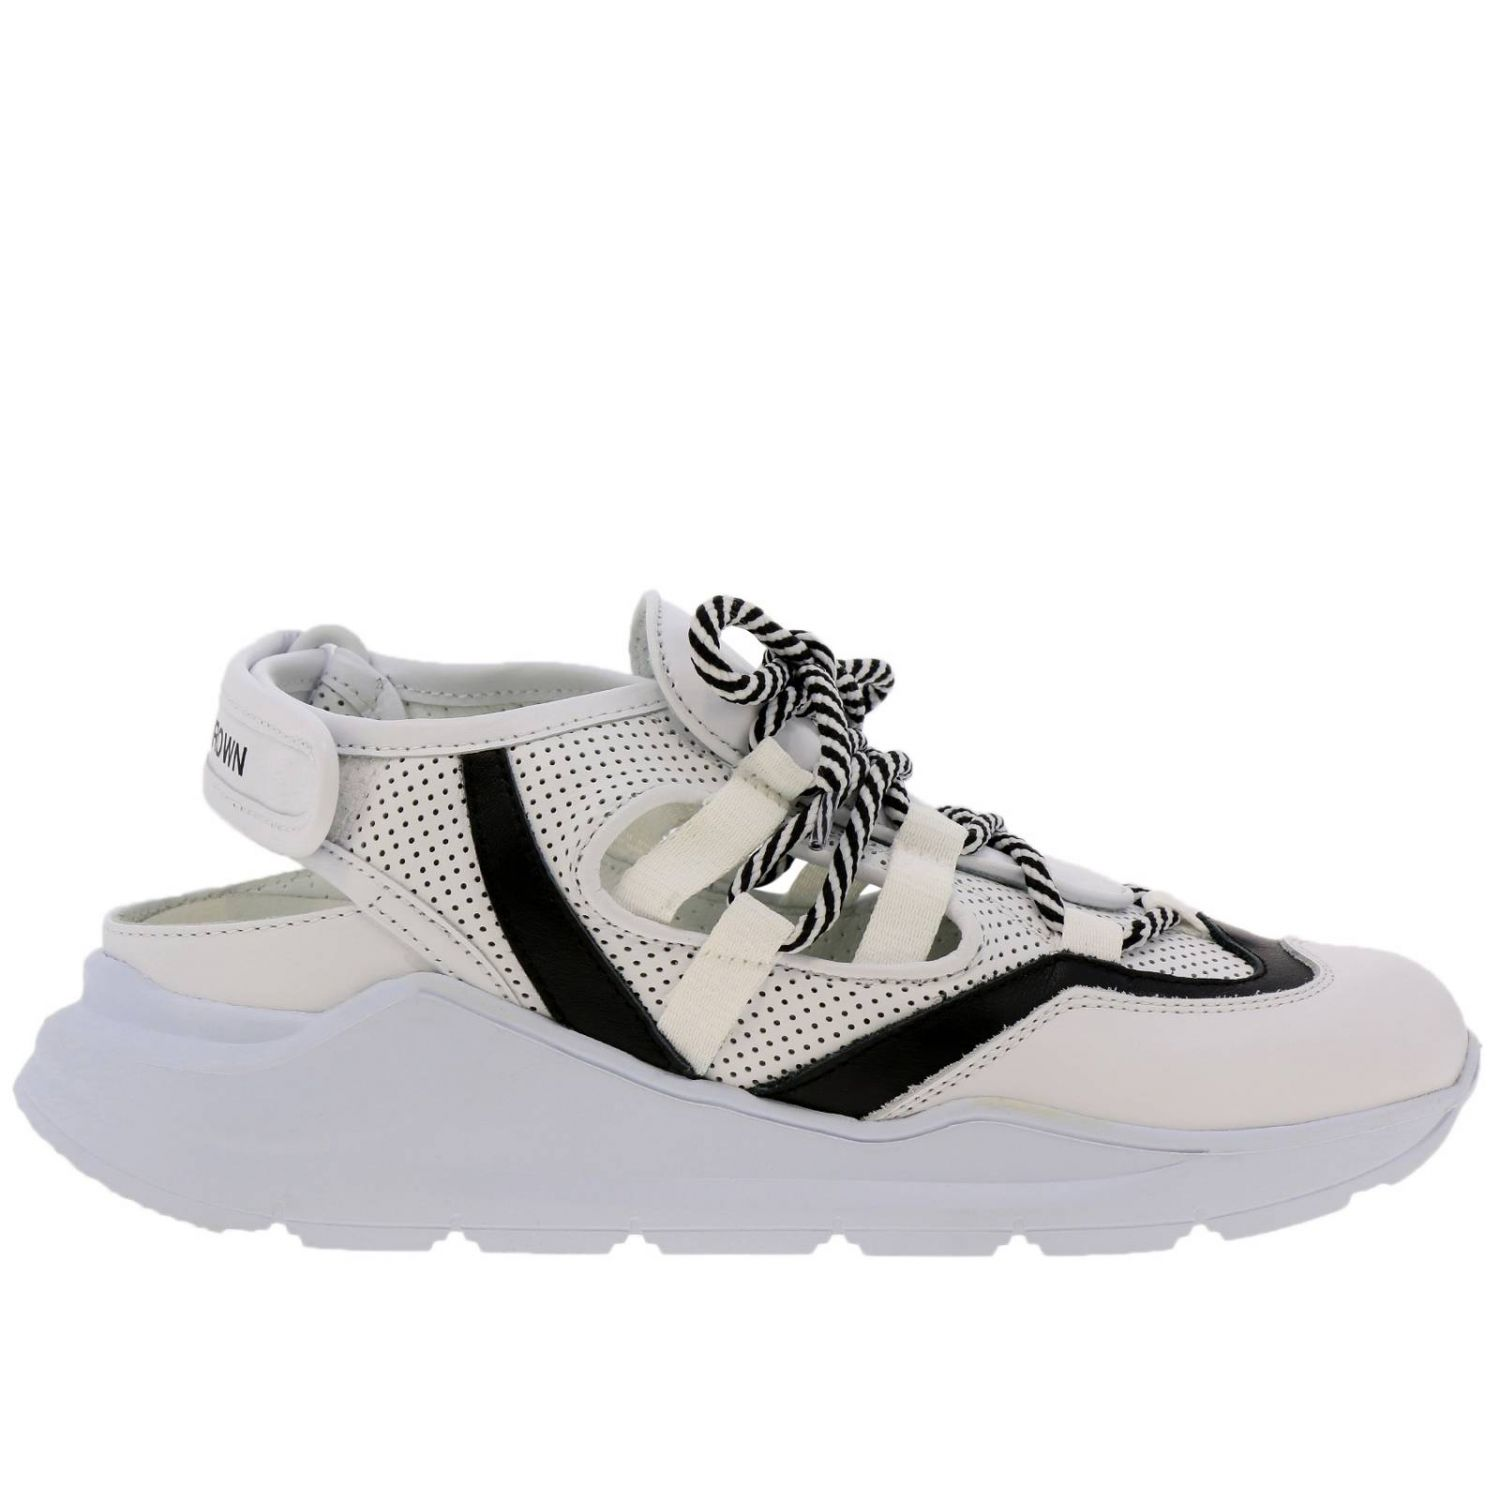 Shoes women Leather Crown white 1